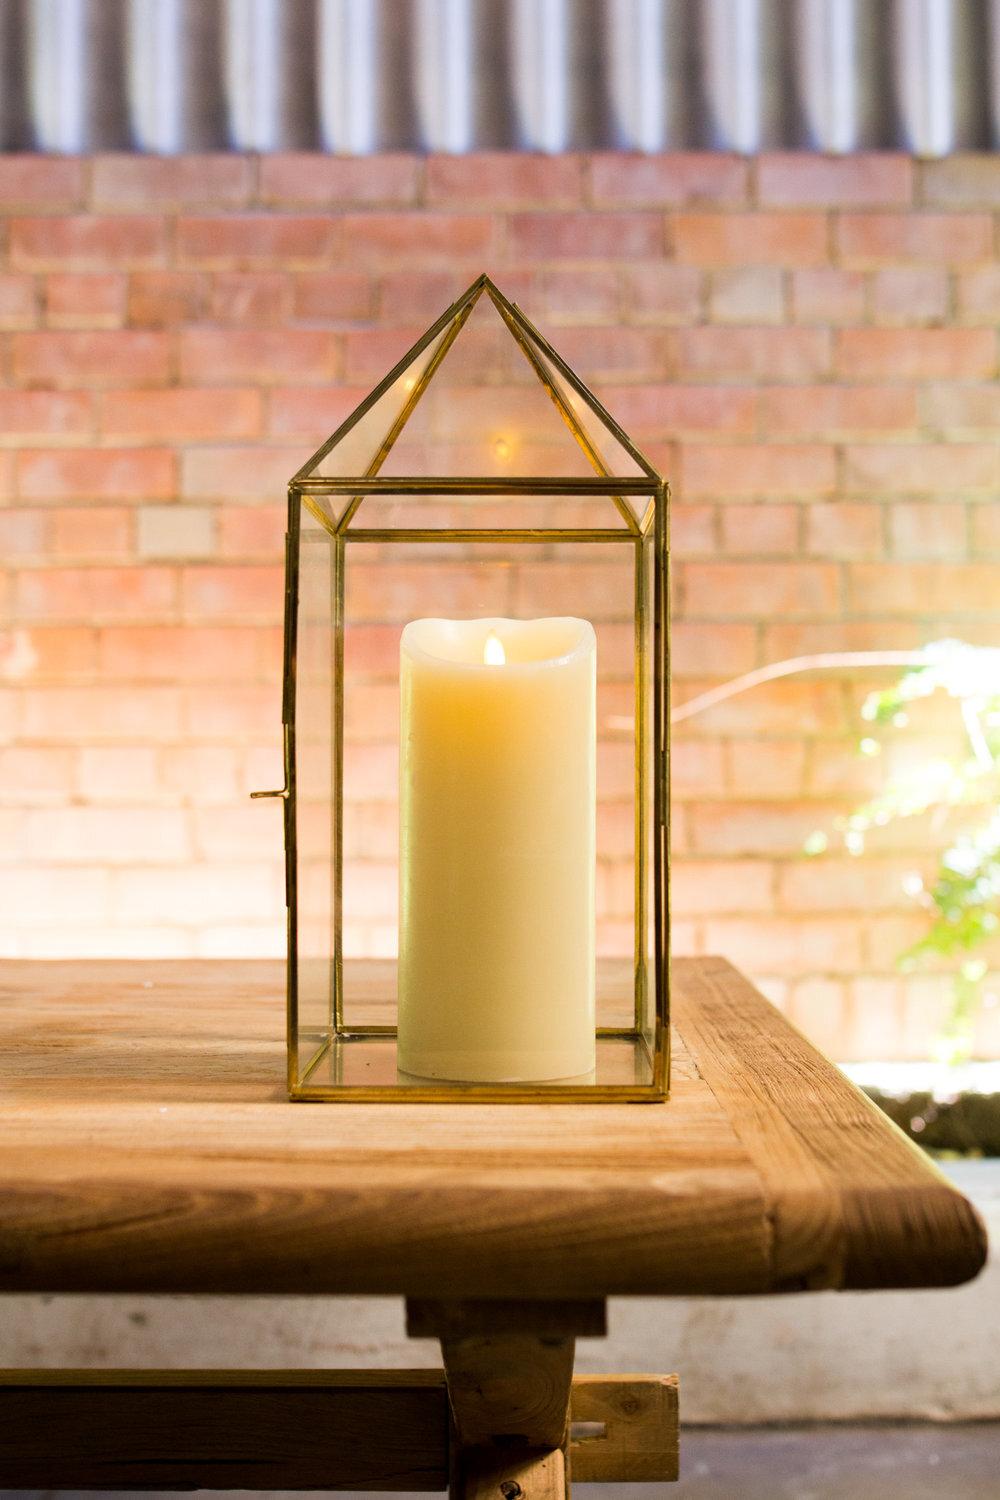 Peaked Brass And Glass Lantern Avideas Event Hire Design